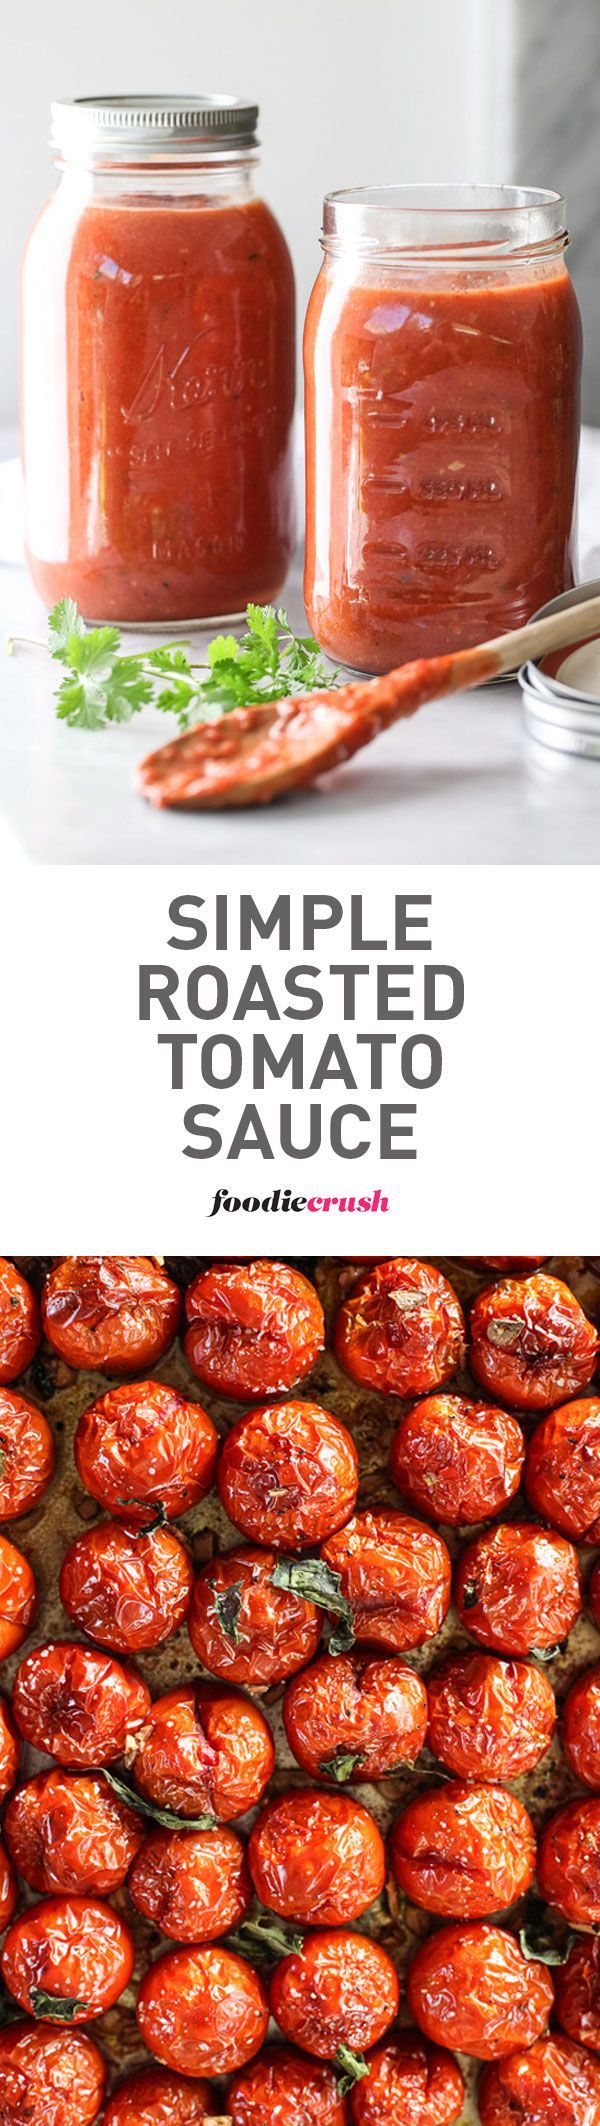 secret to this favorite sauce starts with fresh tomatoes that are roasted in the oven to make them extra sweet all year round |